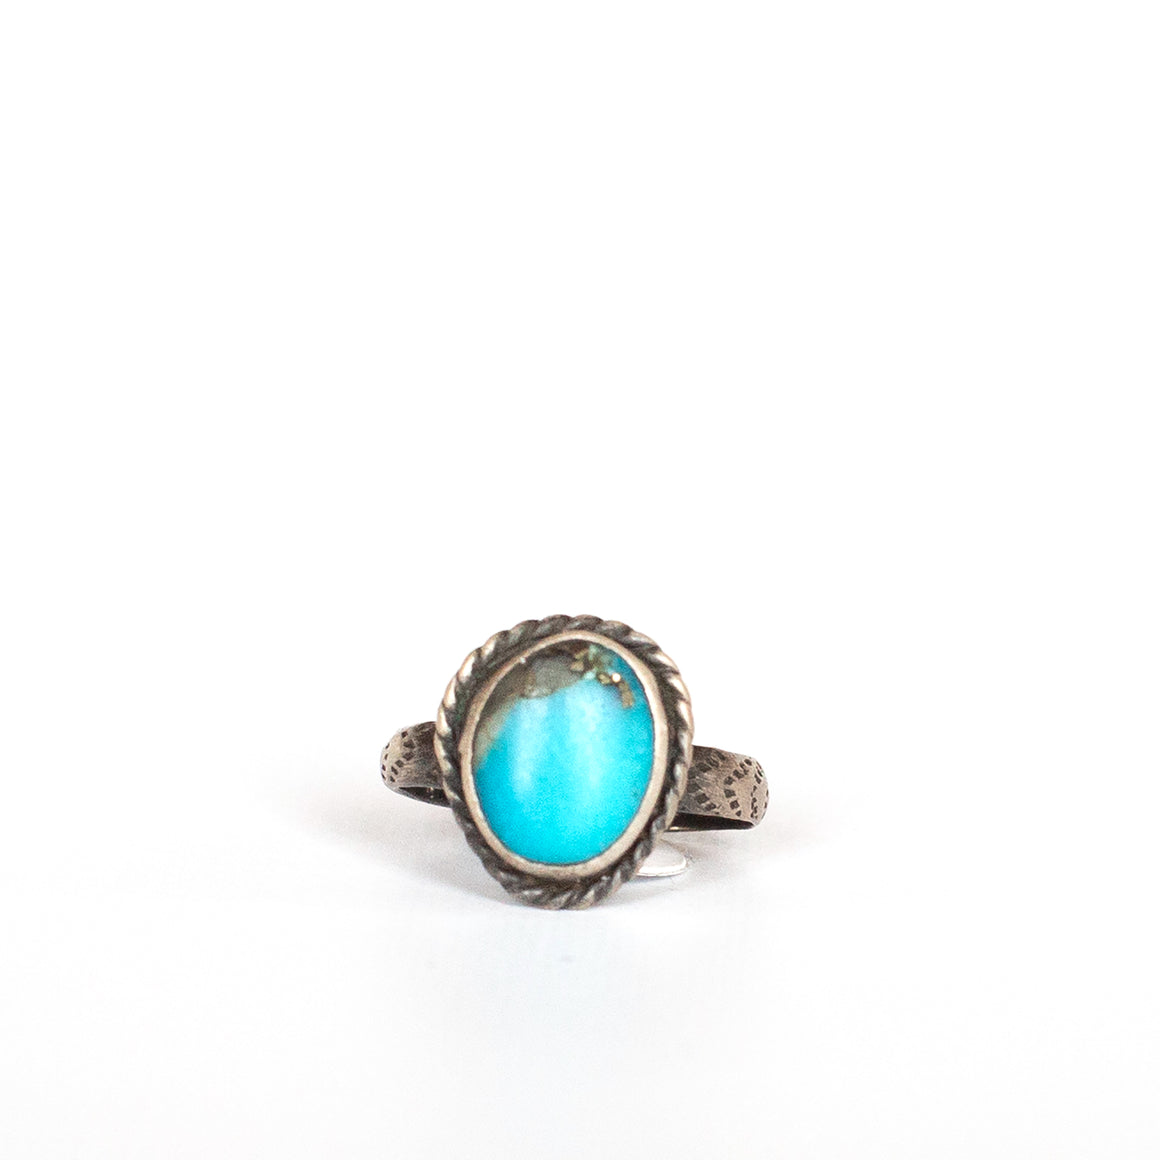 VINTAGE JEWELRY | STERLING TURQUOISE RING (SIZE 4.5)